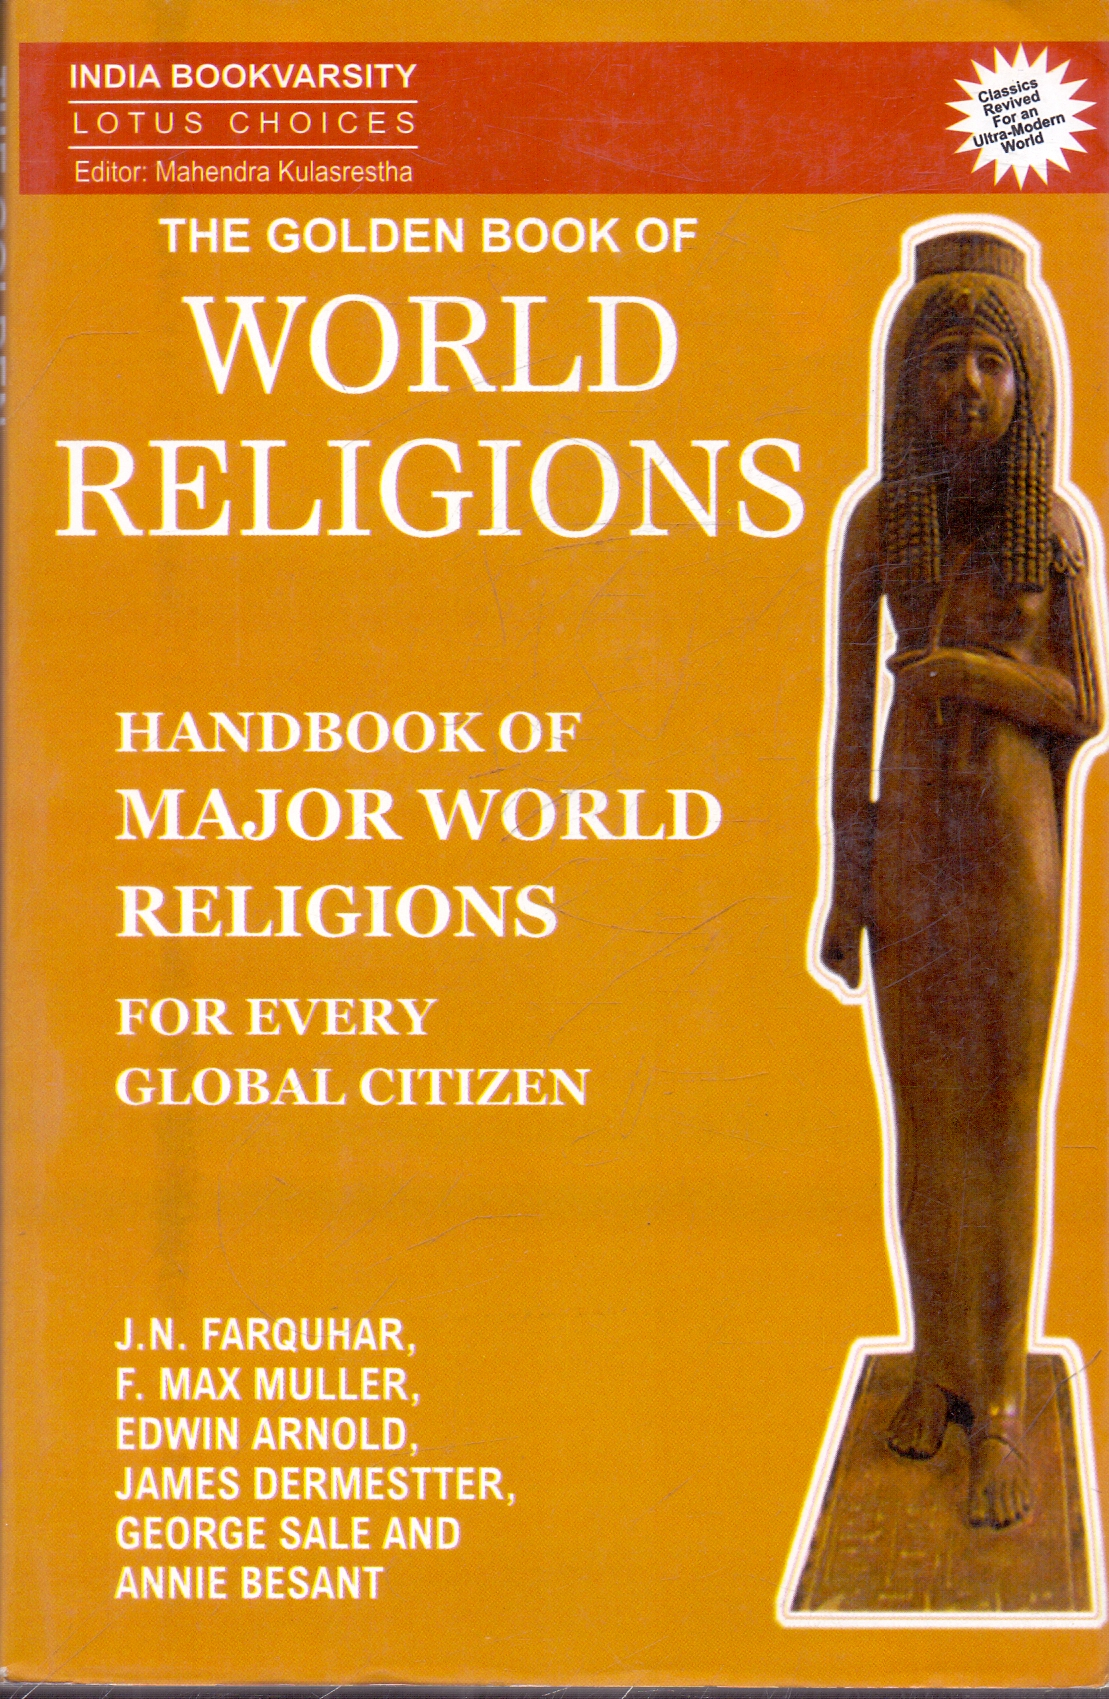 The Golden Book of World Religions